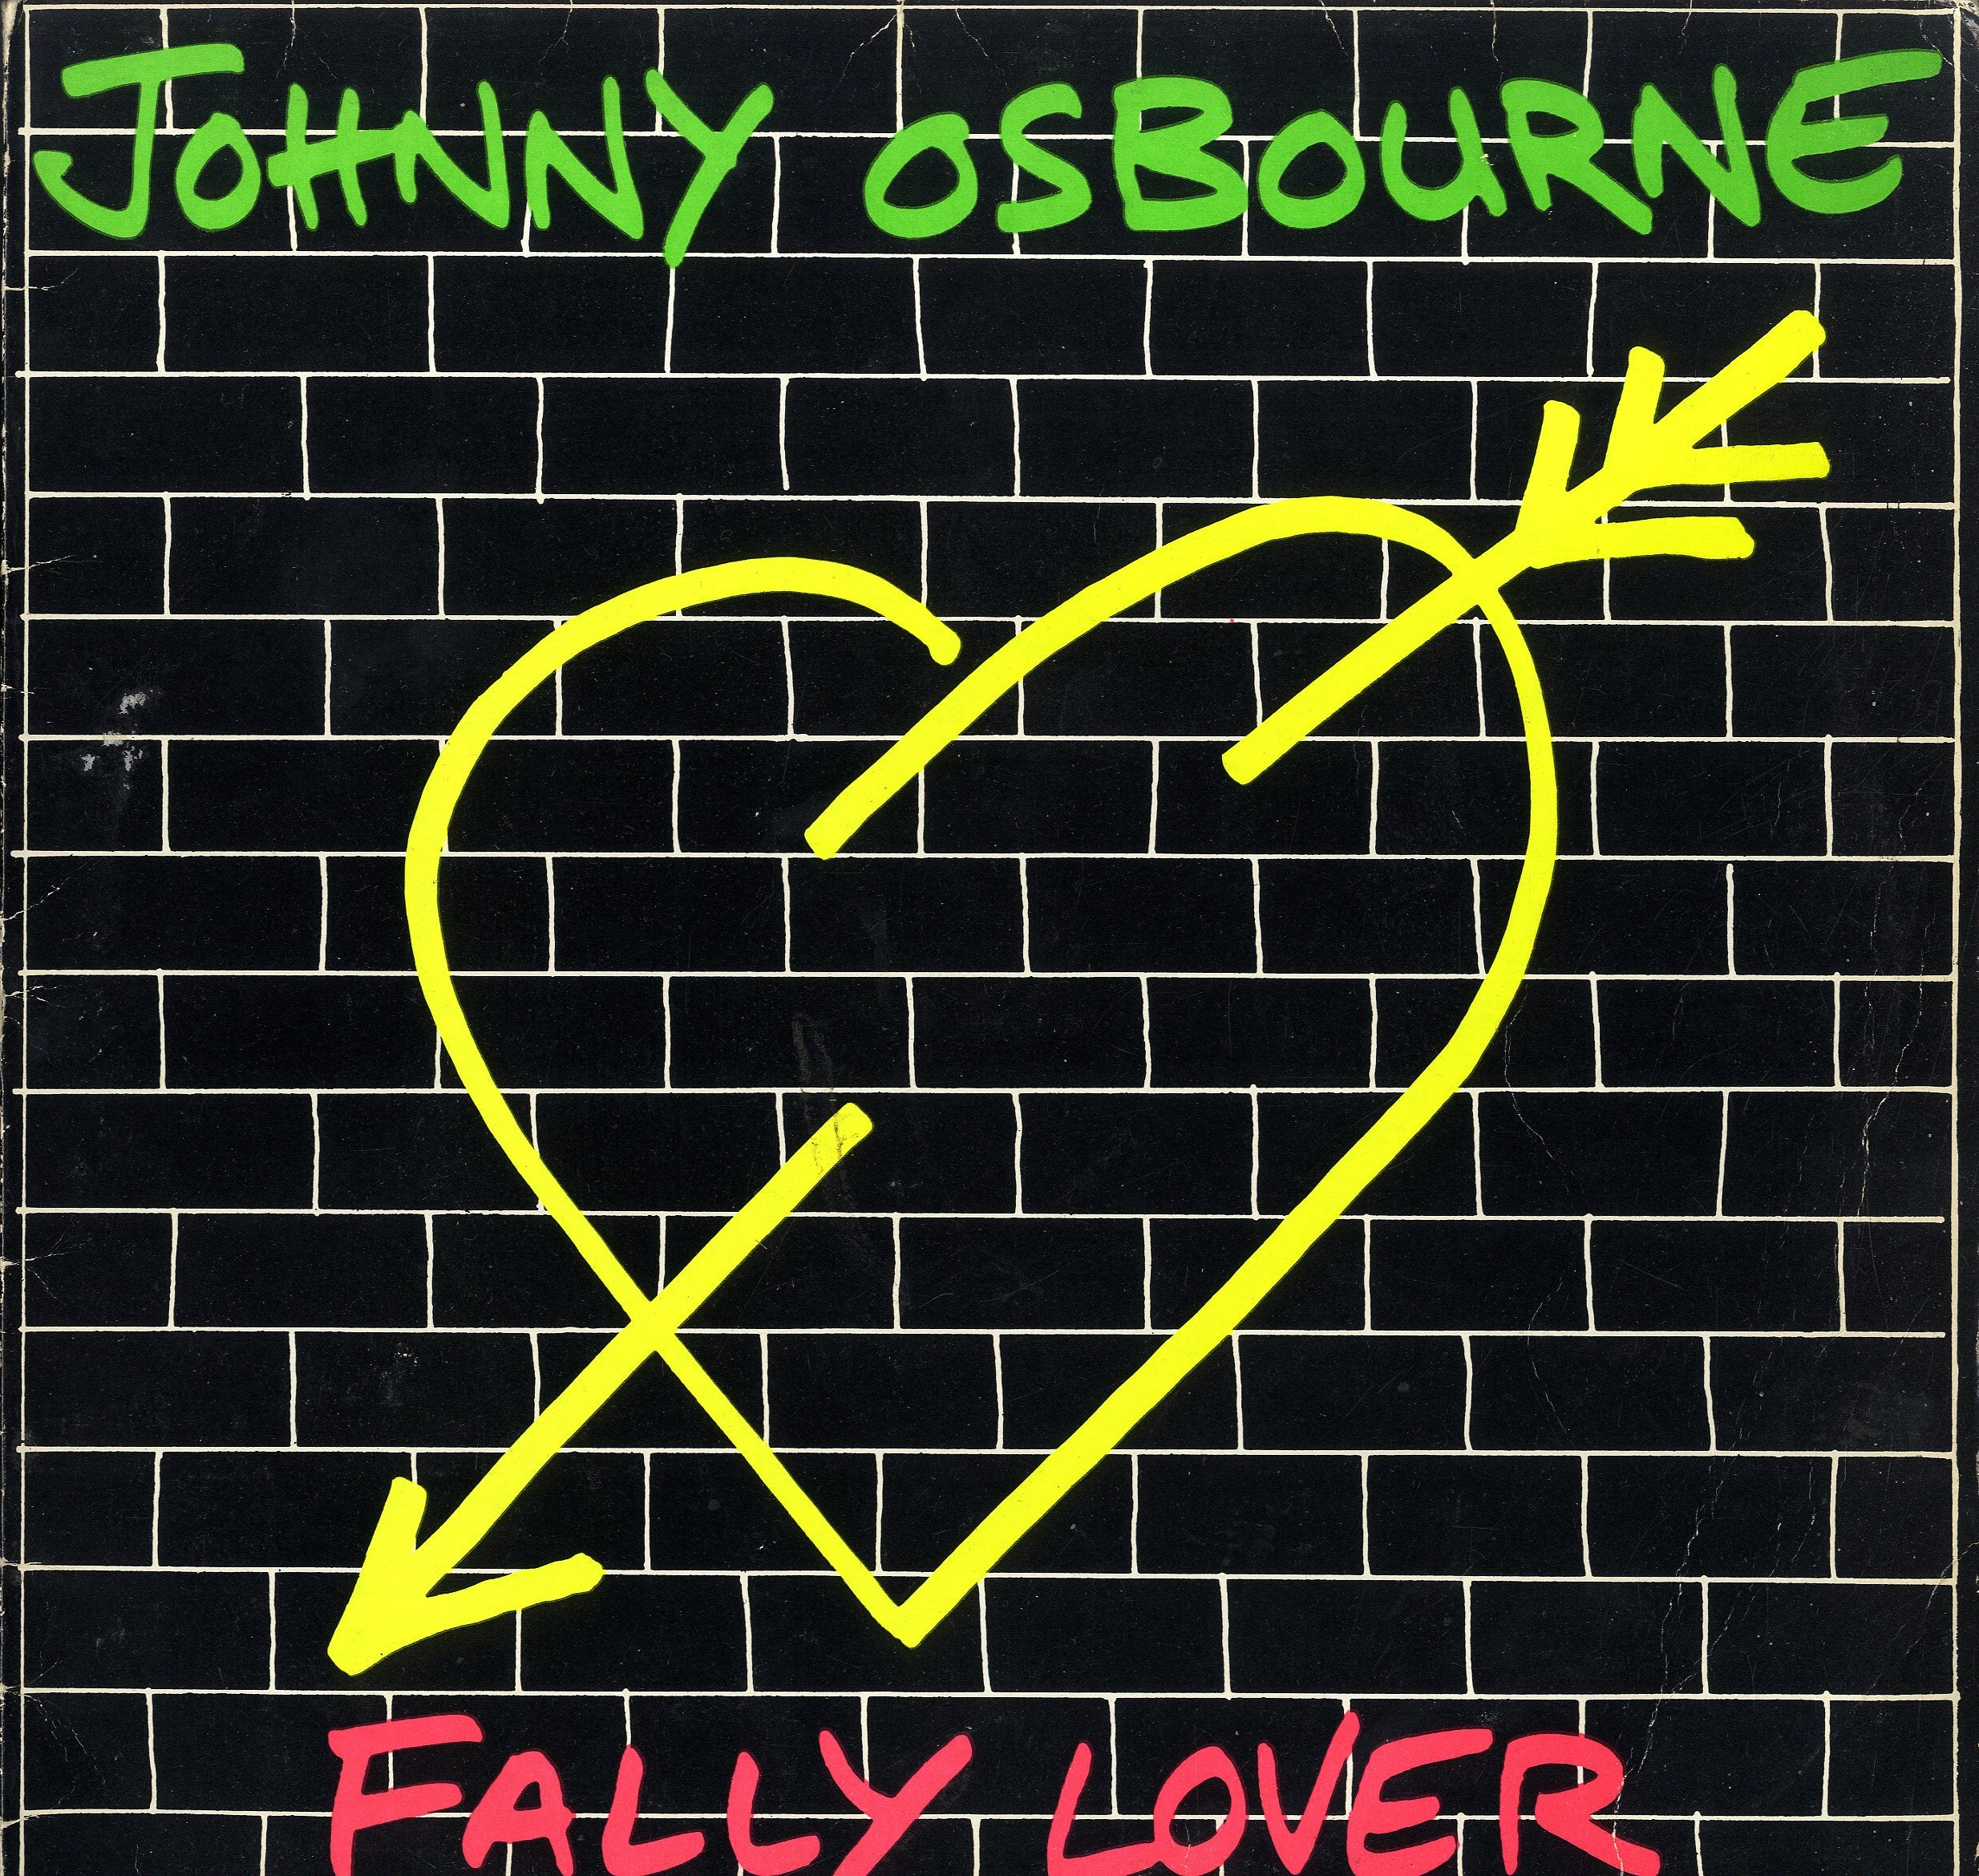 JOHNNY OSBOURNE [Fally Lover]